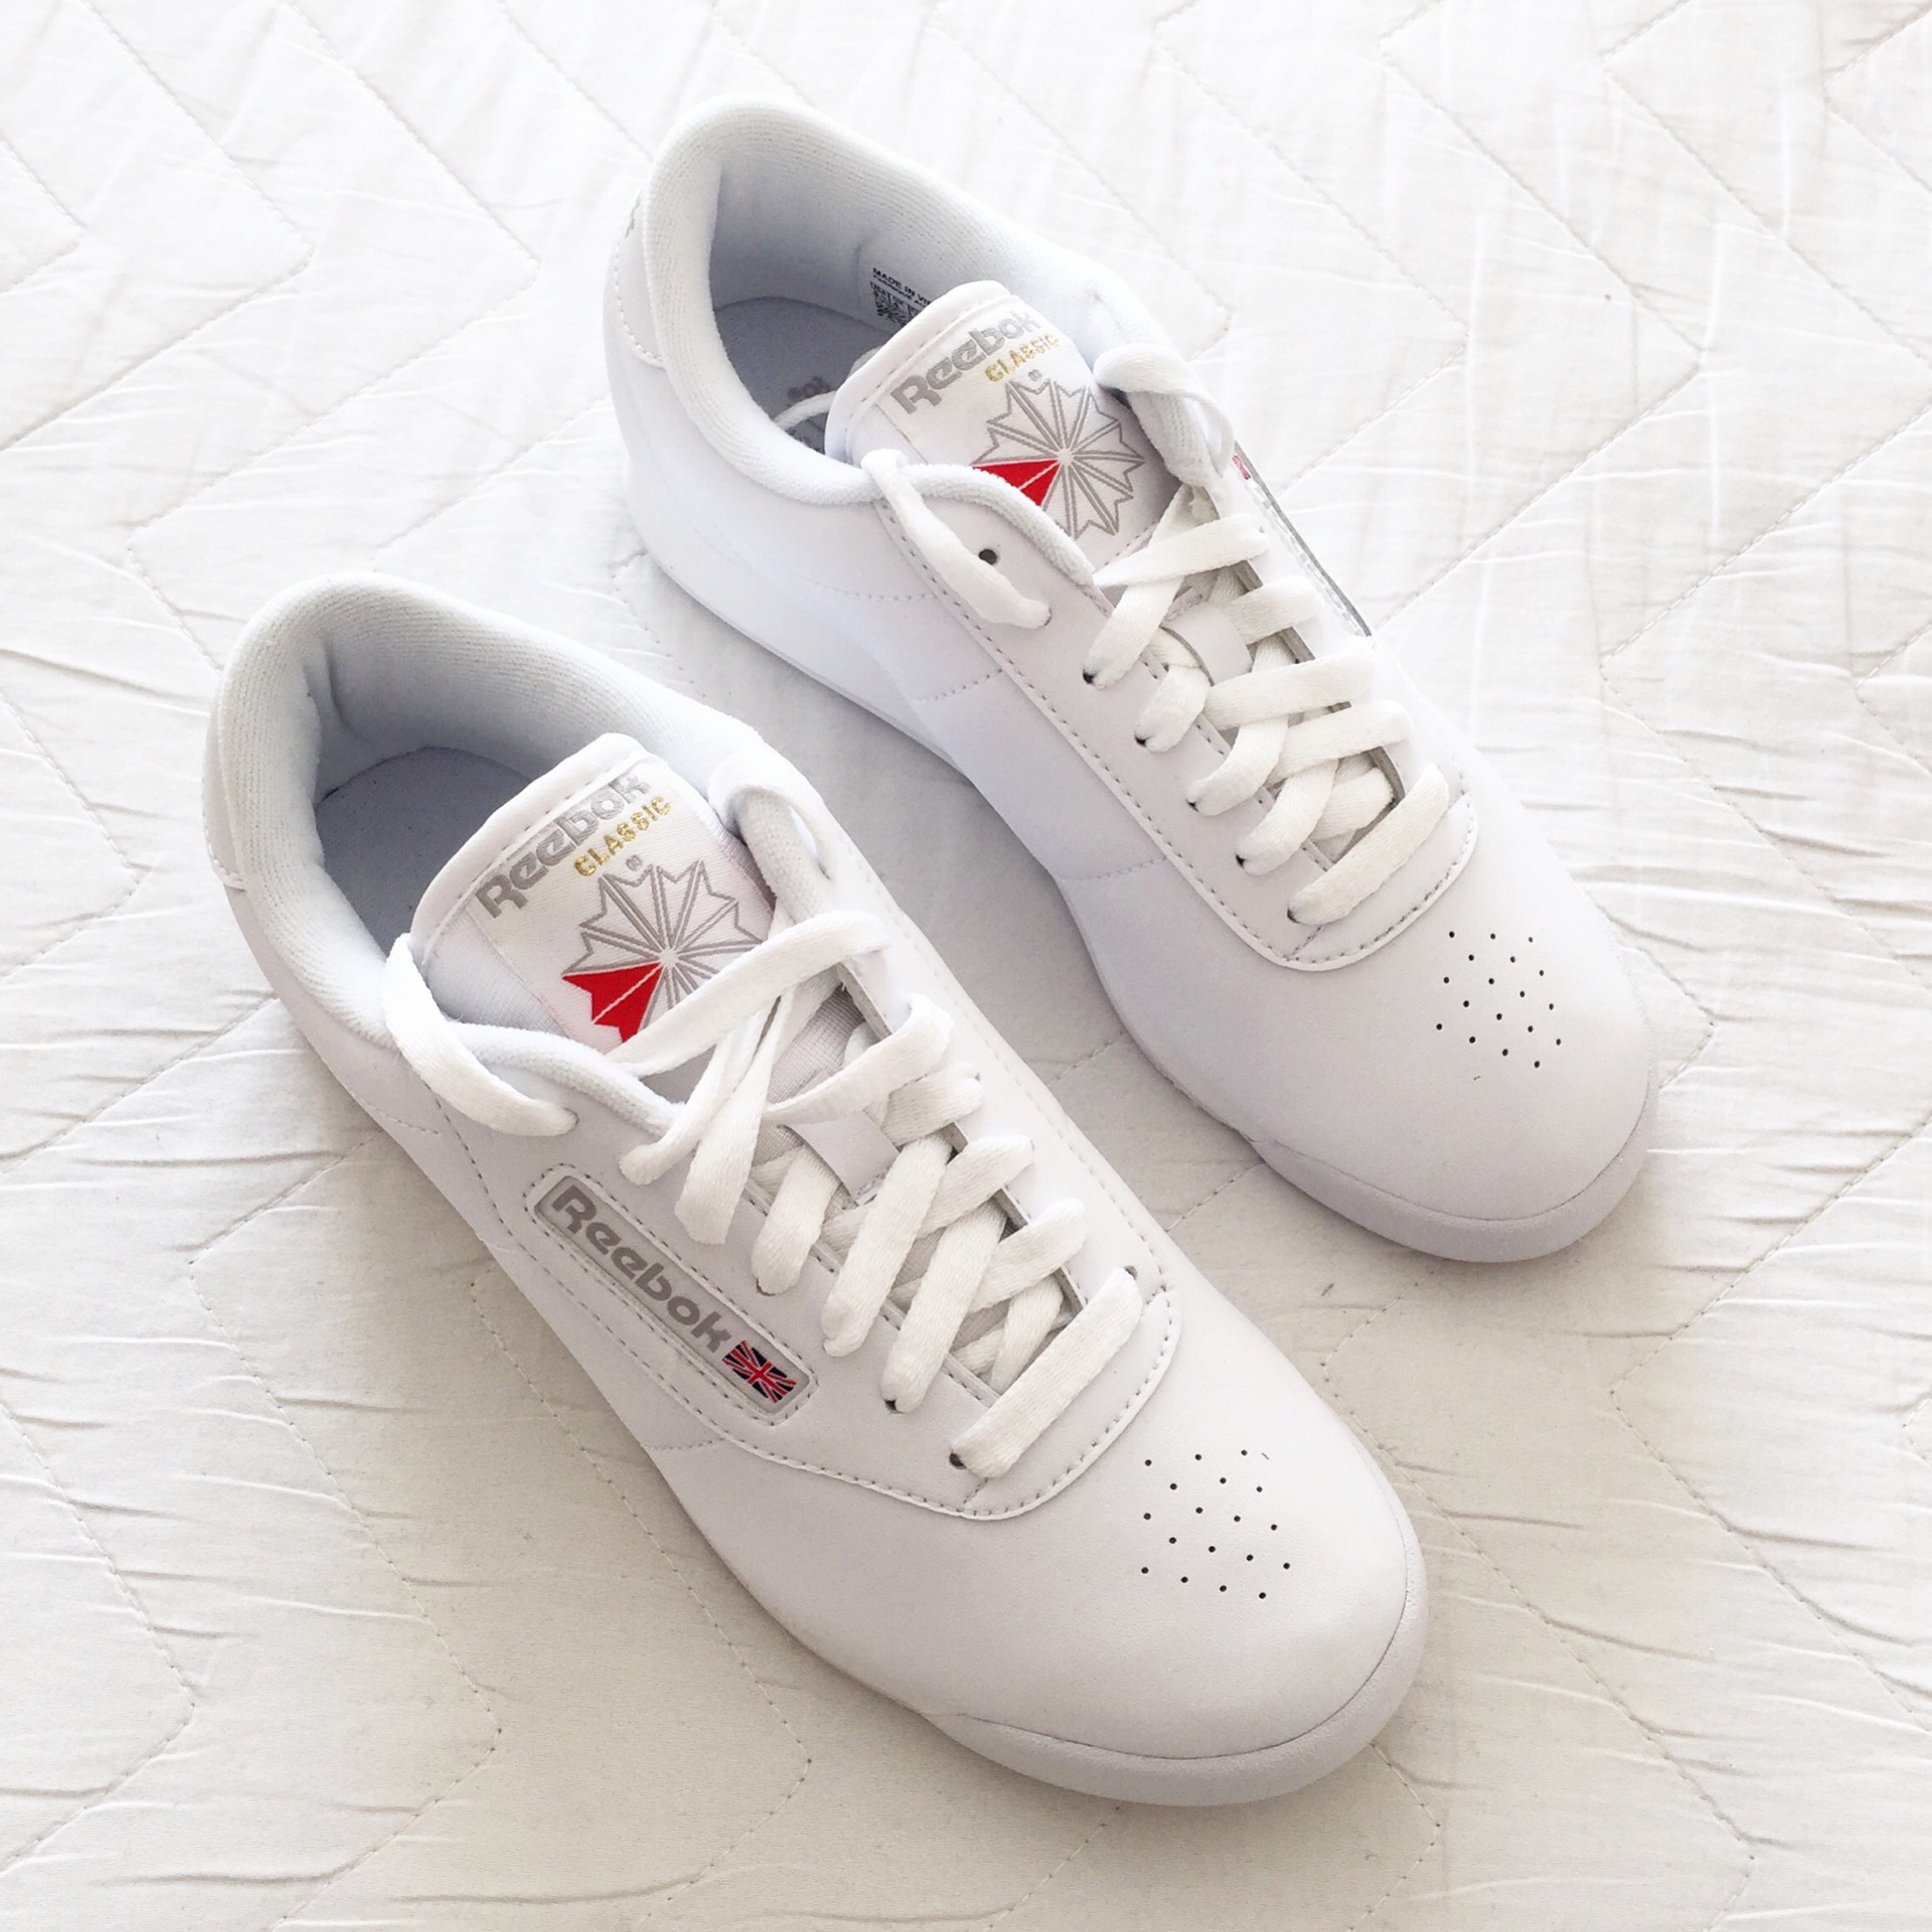 6e43d8868fae How To Style a Pair of Reebok Classic Sneakers